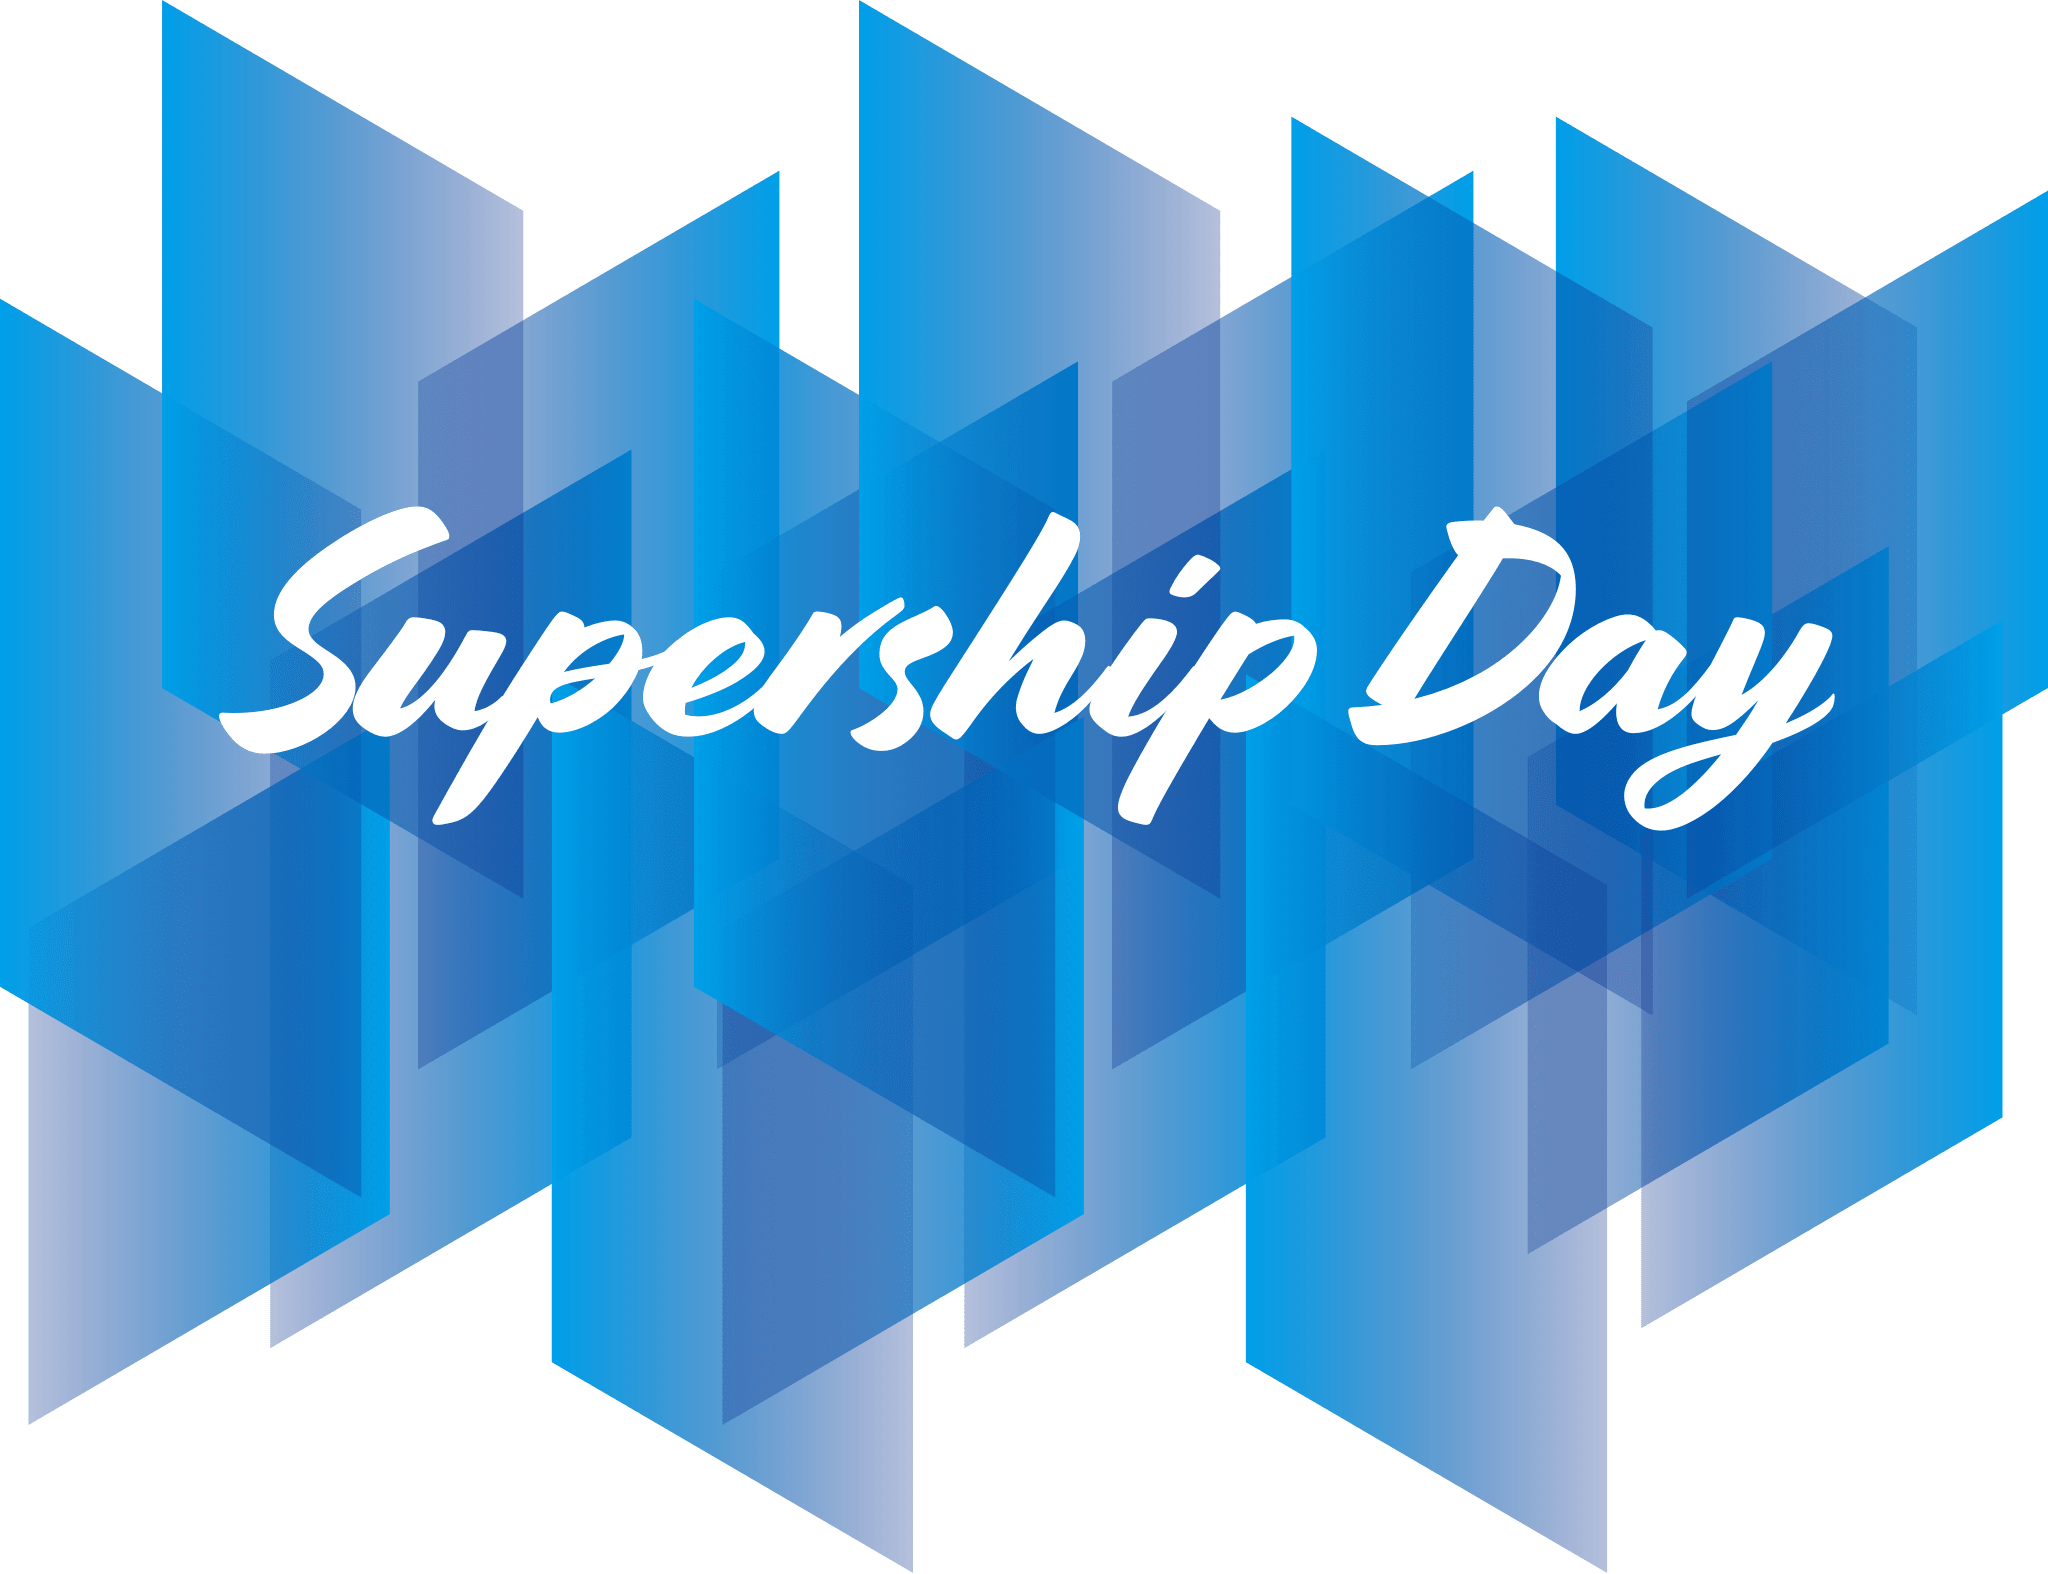 Supership Day